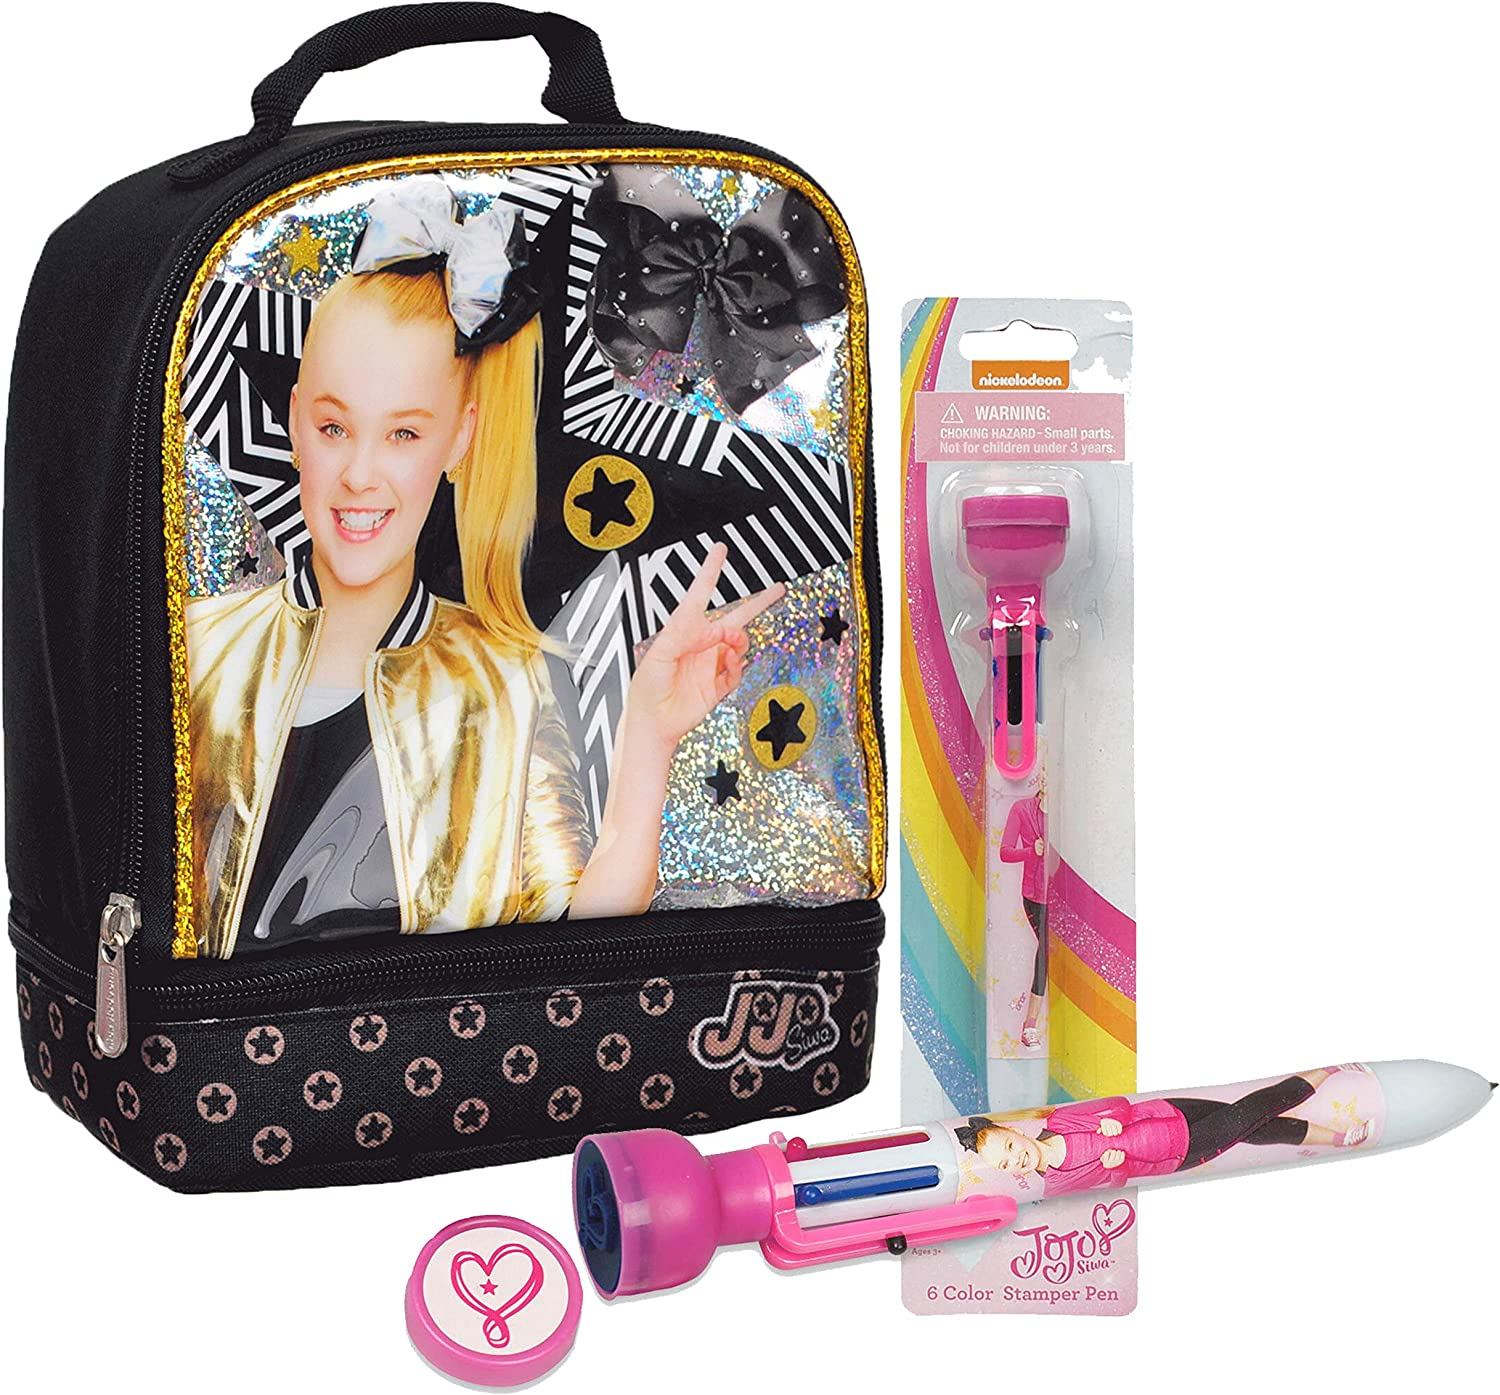 Nickelodeon JoJo Siwa Girls/' Insulated Lunch Bag with Strap